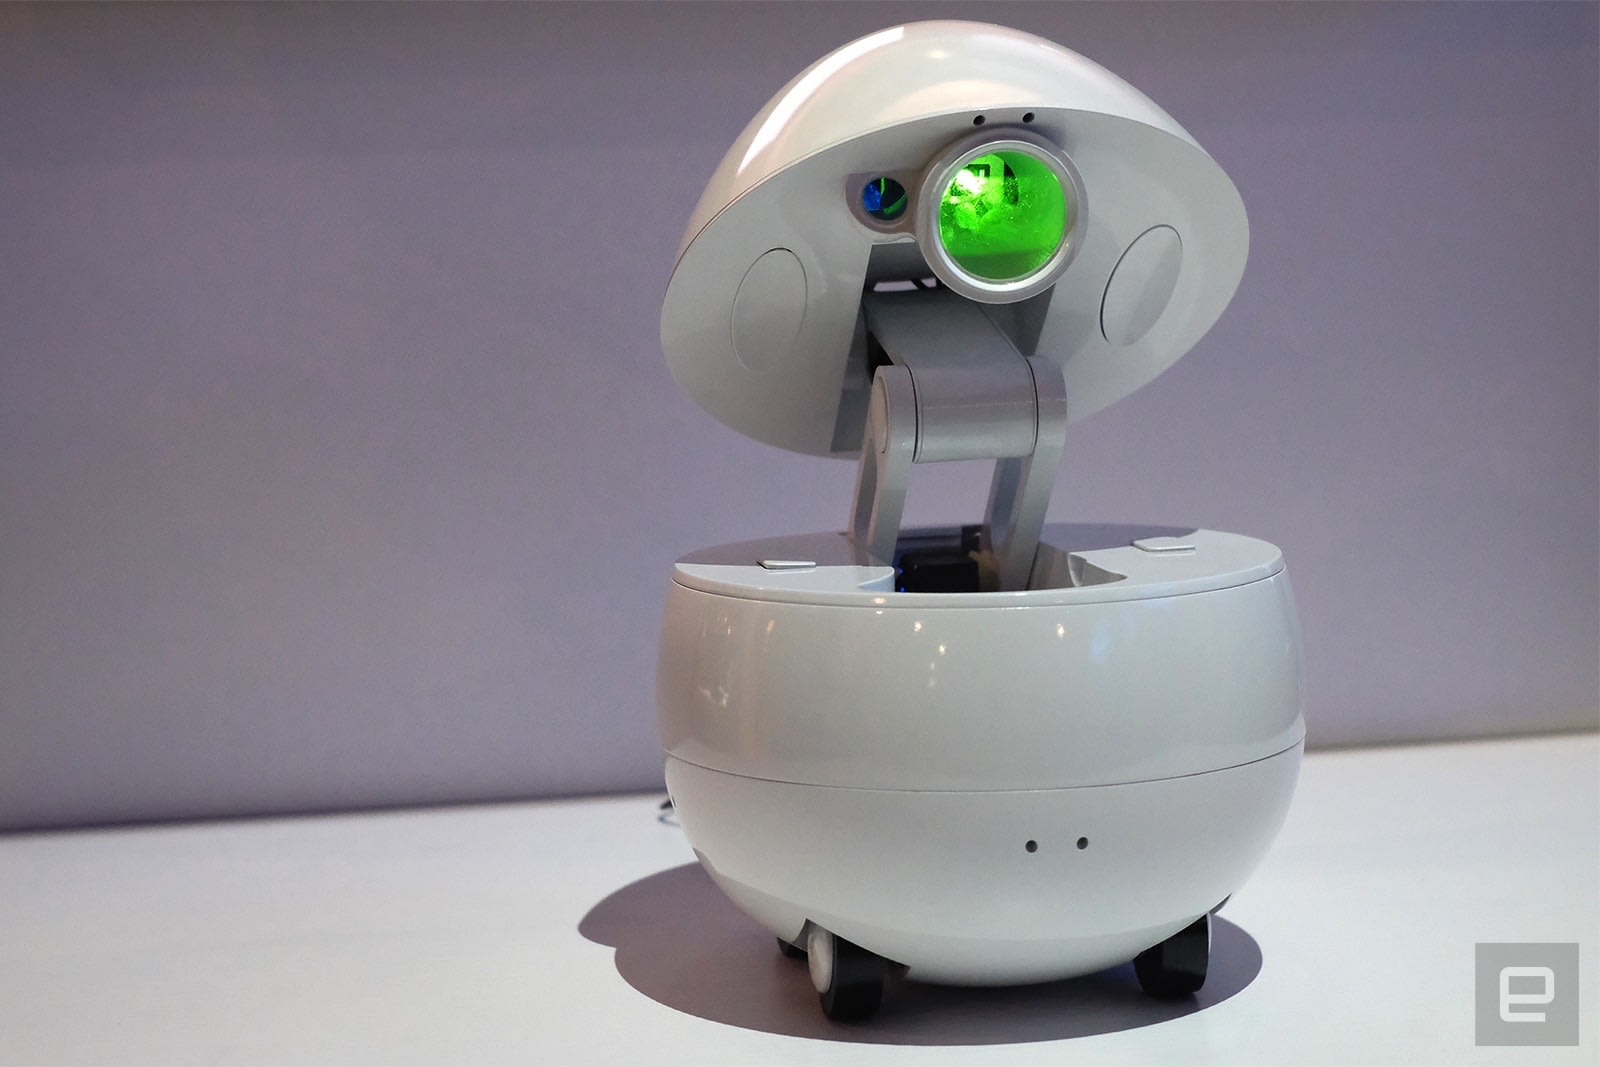 Meet the deceptively adorable members of LG's robot squad